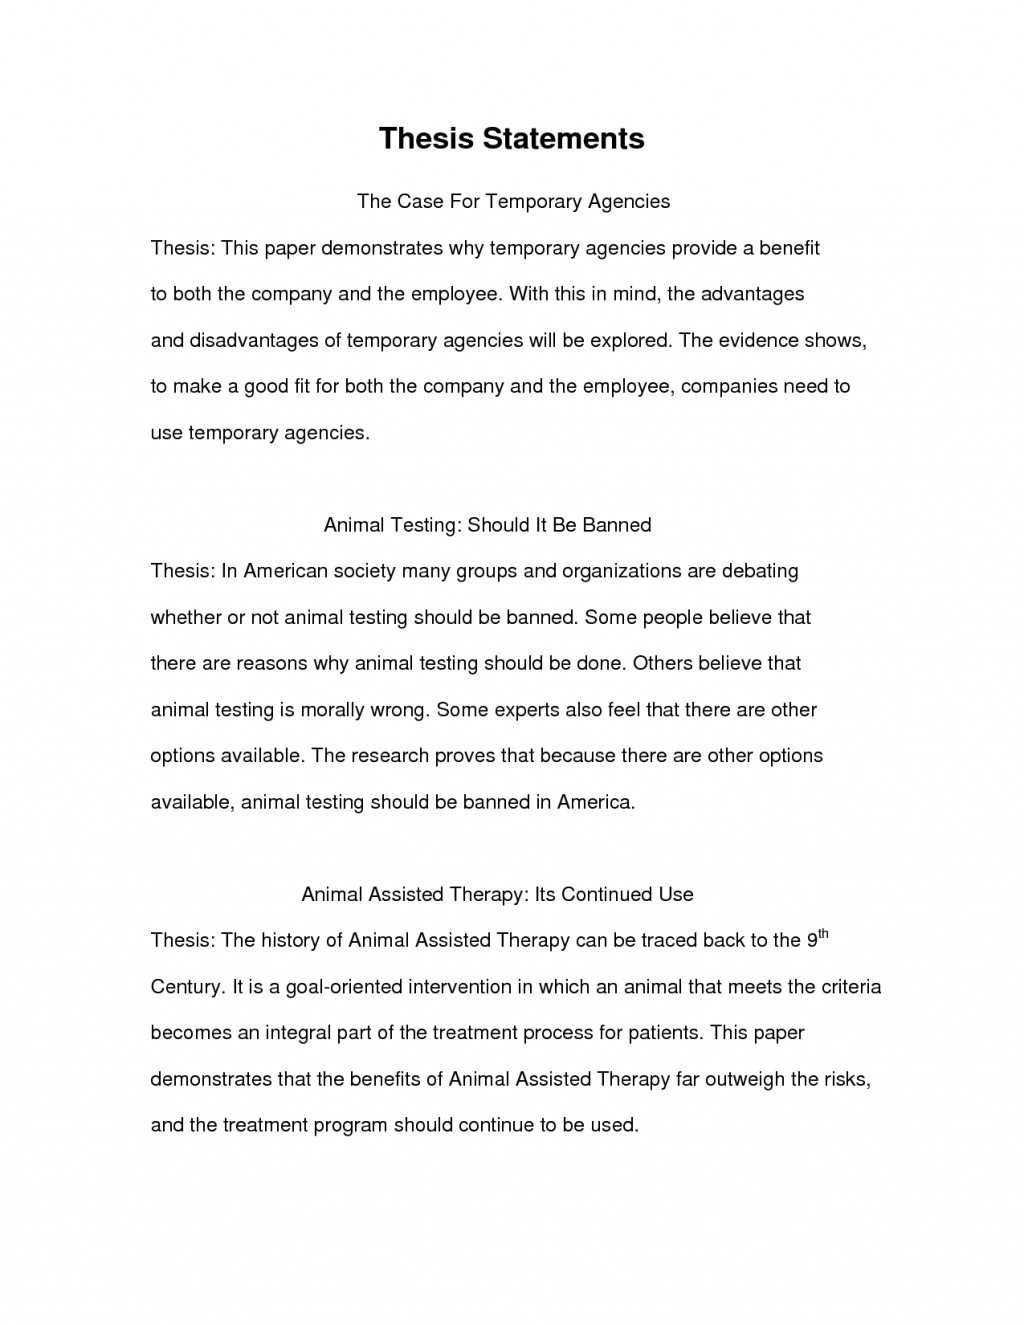 006 Example Essay Thesis Statement Examplesch Paper Of Statements For Expository Essays Comparative On Cosmetic Surgery Good Narrative Informative Compare And Contrast College Argumentative Fantastic An A Research Large